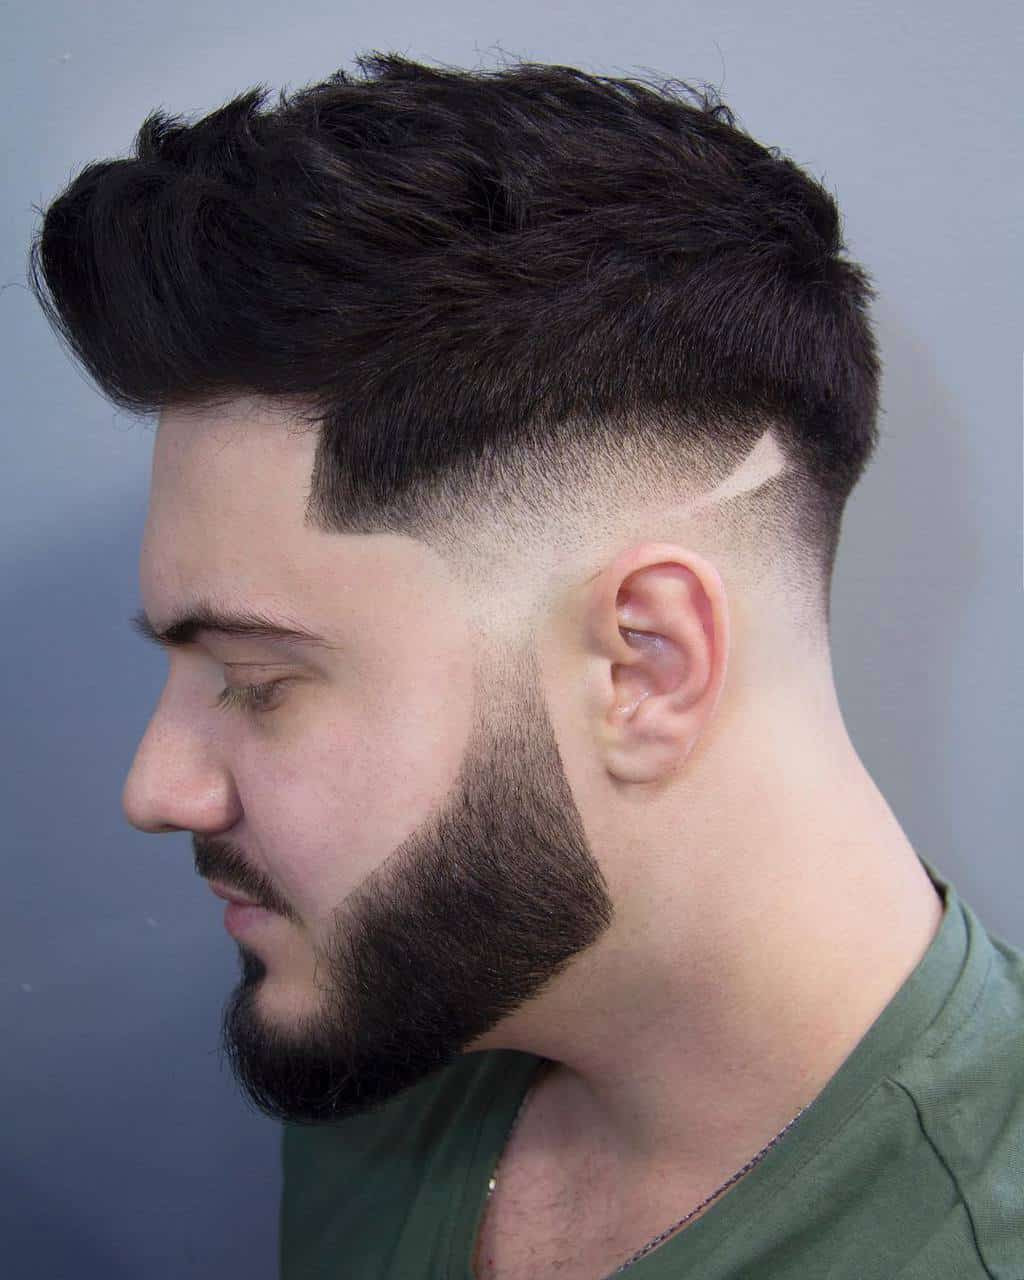 160 Coolest Beard Styles To Grab Instant Attention 2018 BeardStyle